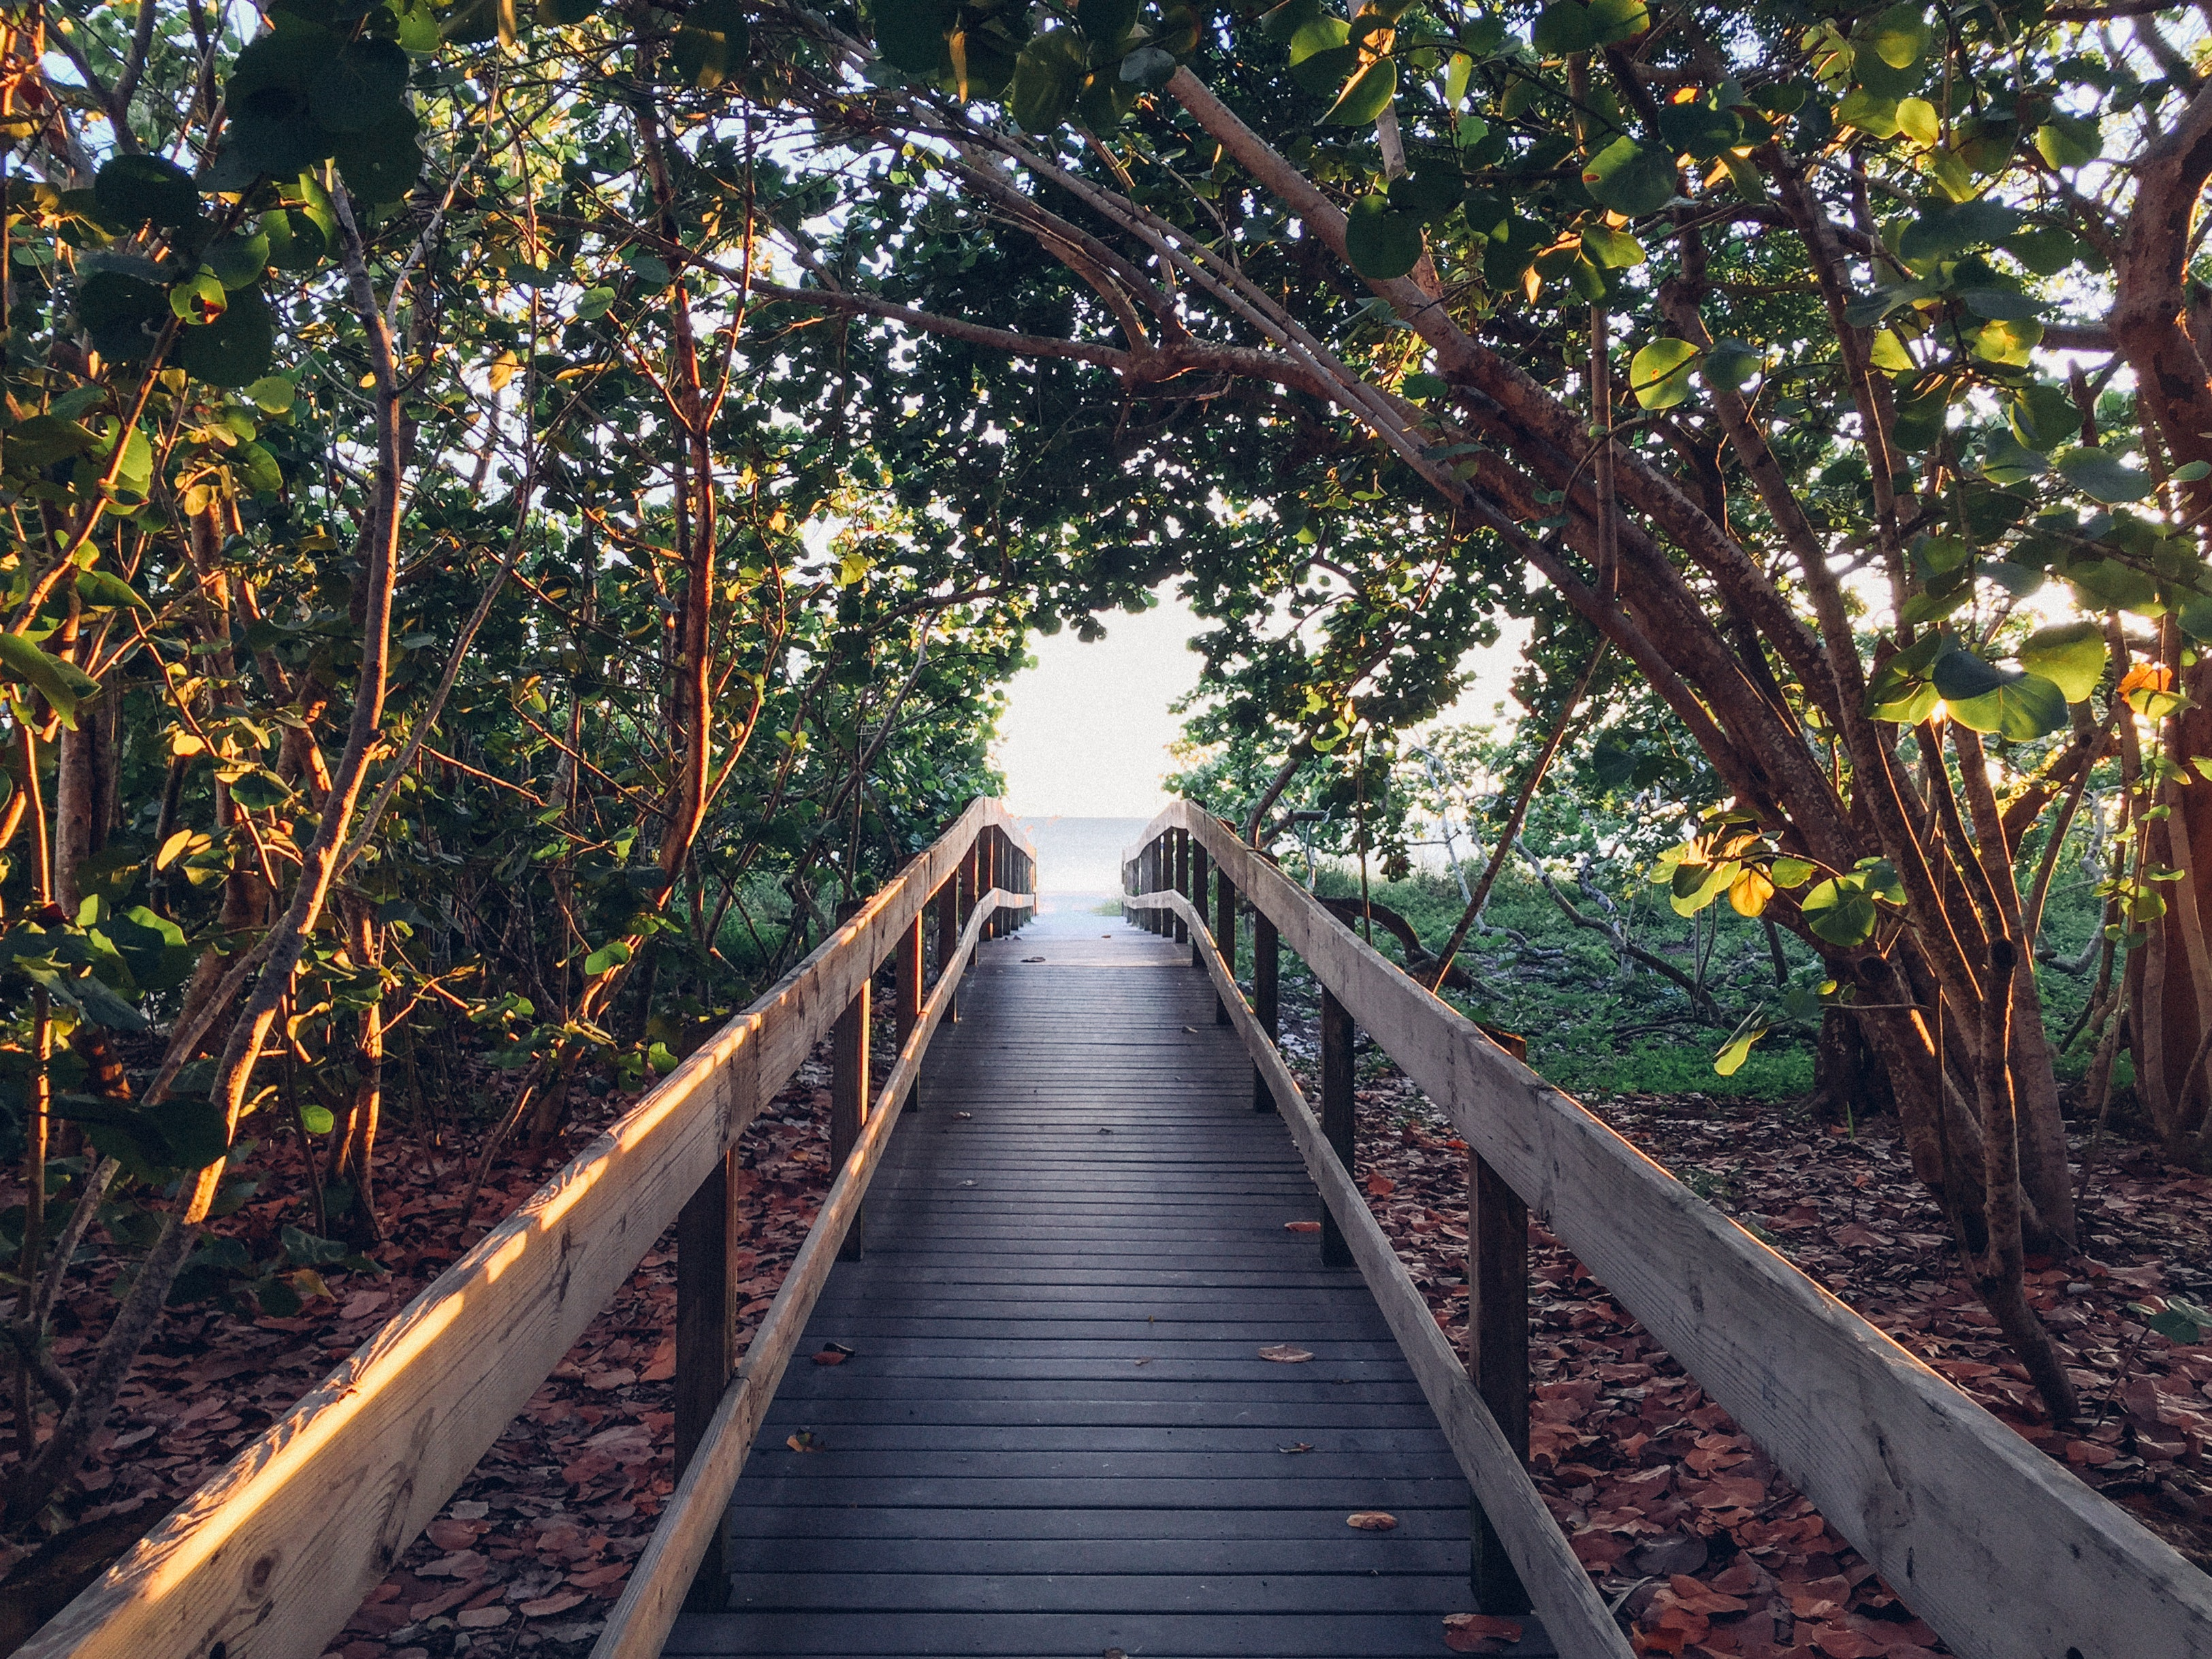 Black Pathway Between Green Trees Towards Body of Water during Daytime, Beach, Boardwalk, Branches, Leaves, HQ Photo